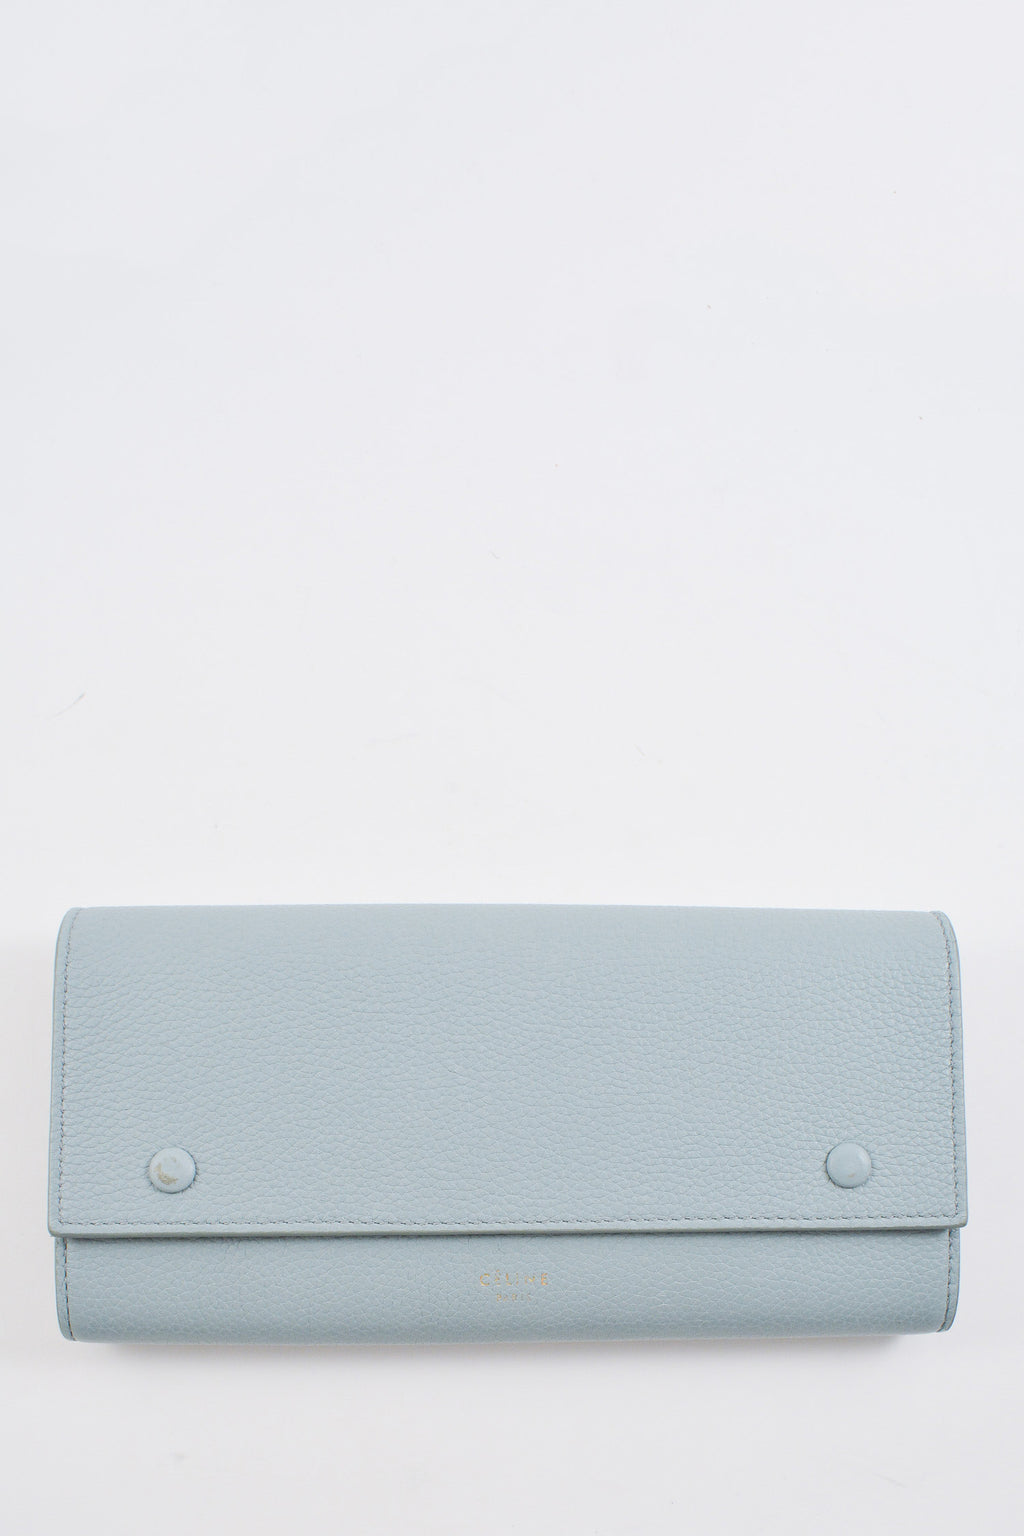 Celine Large Multifunctional Blue Wallet